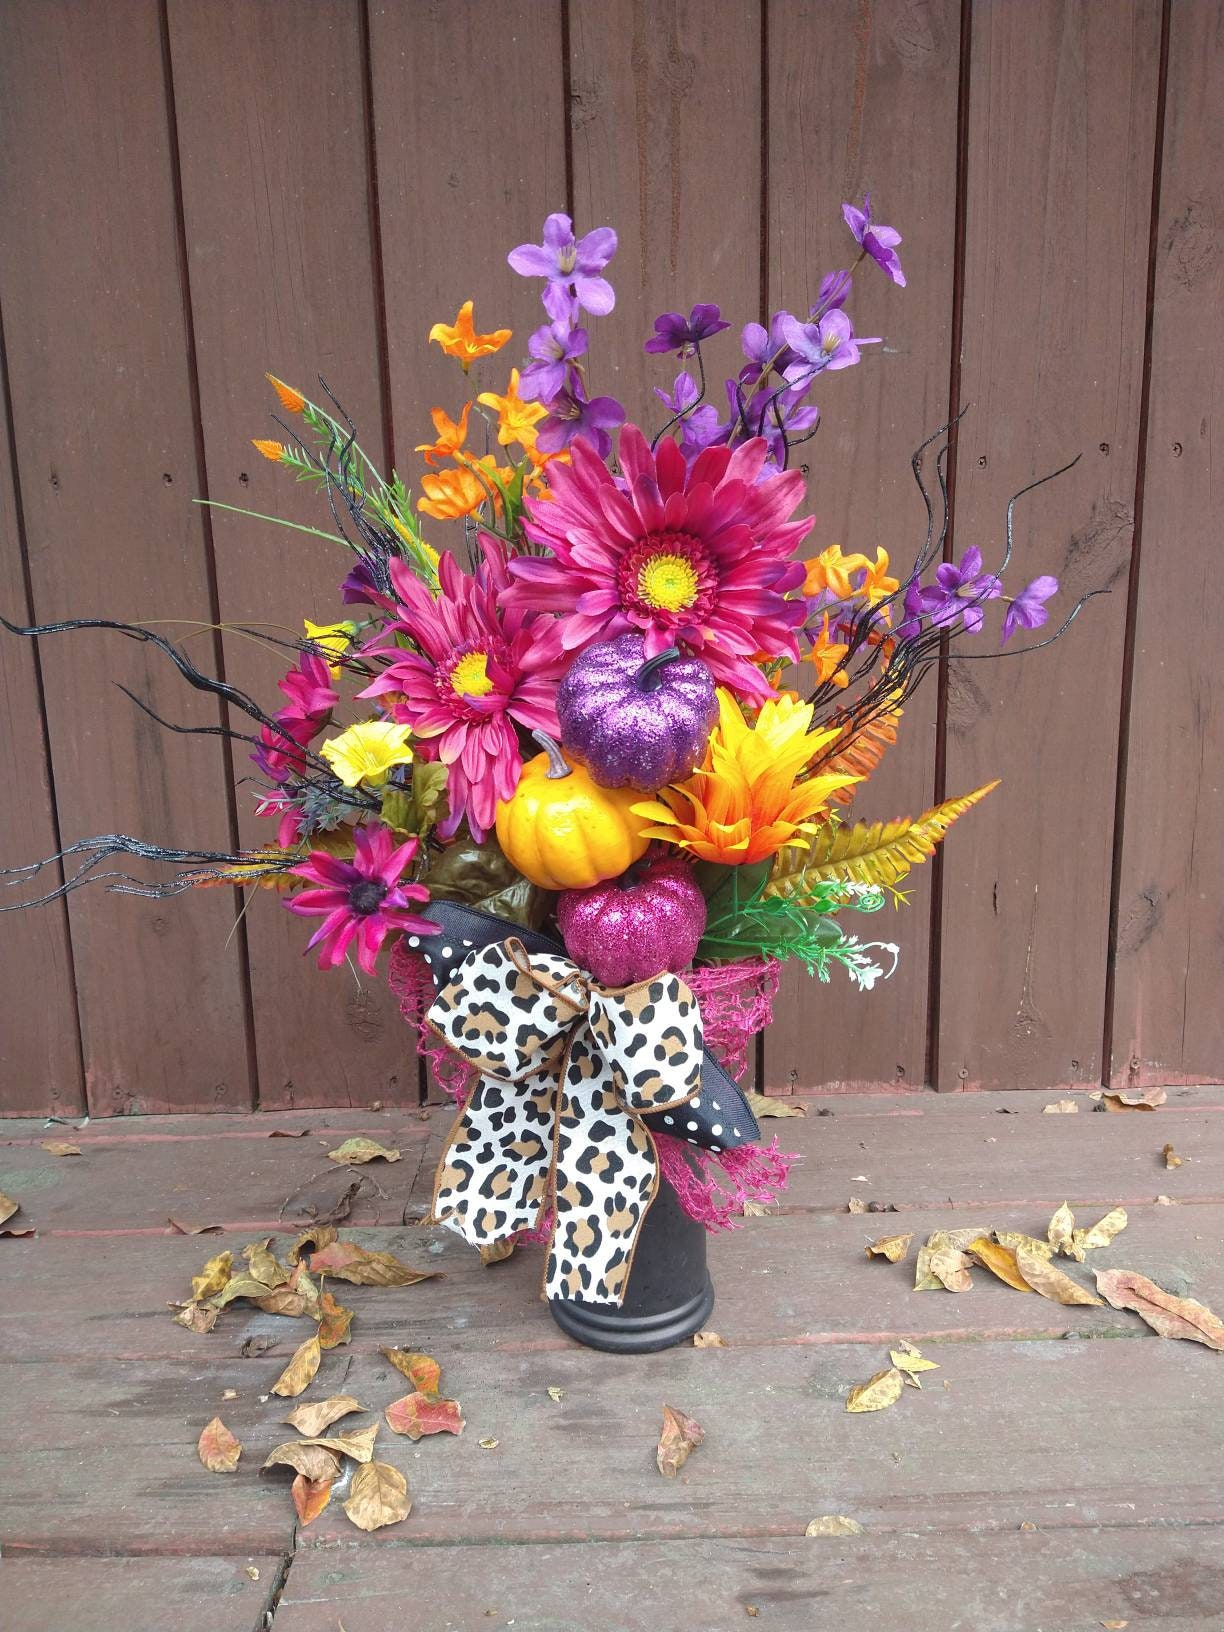 Flowers For Cemeteries Fall Colorful Arrangement For Cemetary Grave Flowers For Daughter Halloween Flower Arrangement For Vase